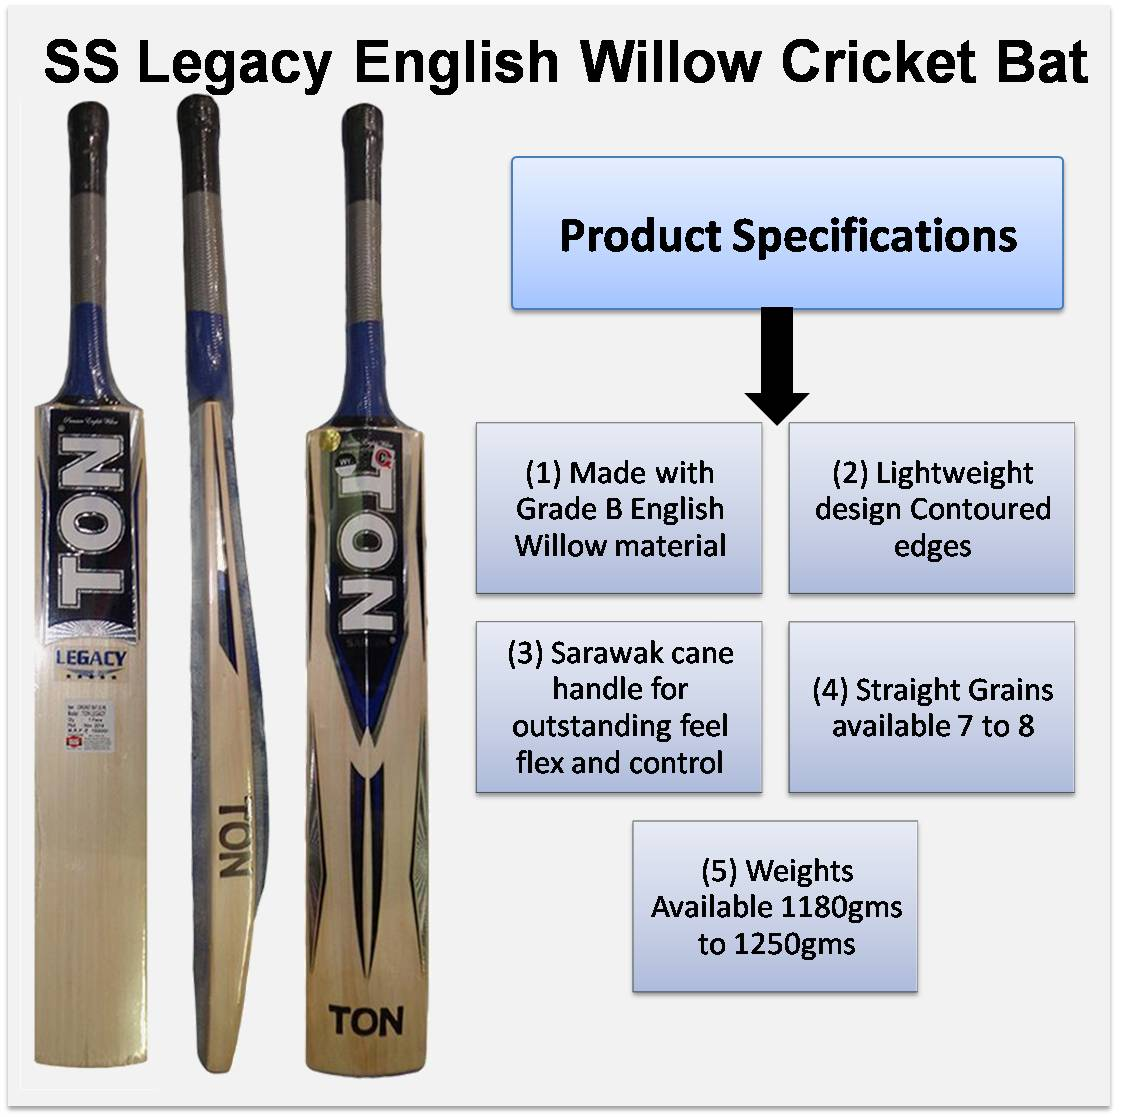 SS legacy English Willow Cricket Bat